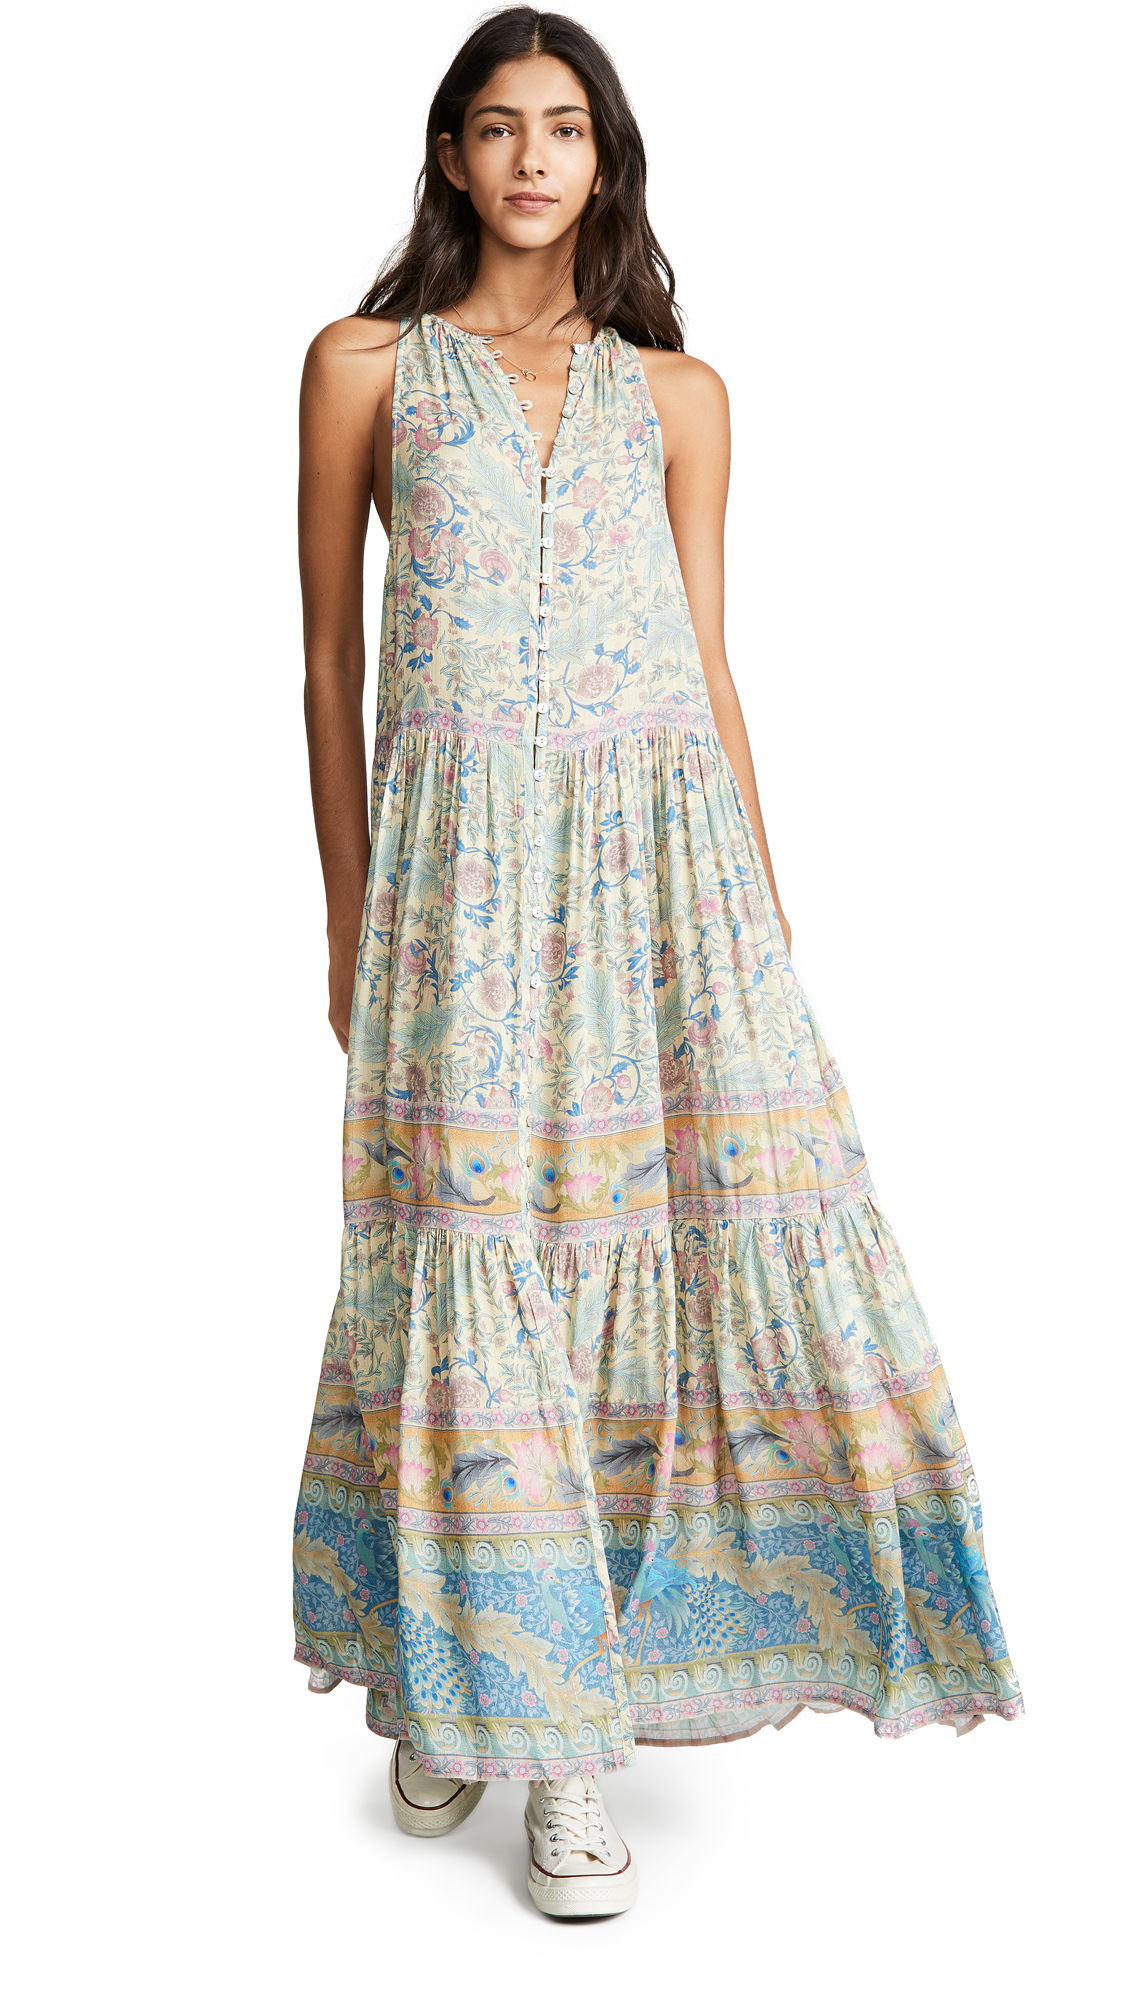 49bfd4d7fc5 Spell and the Gypsy Collective Oasis Maxi Dress